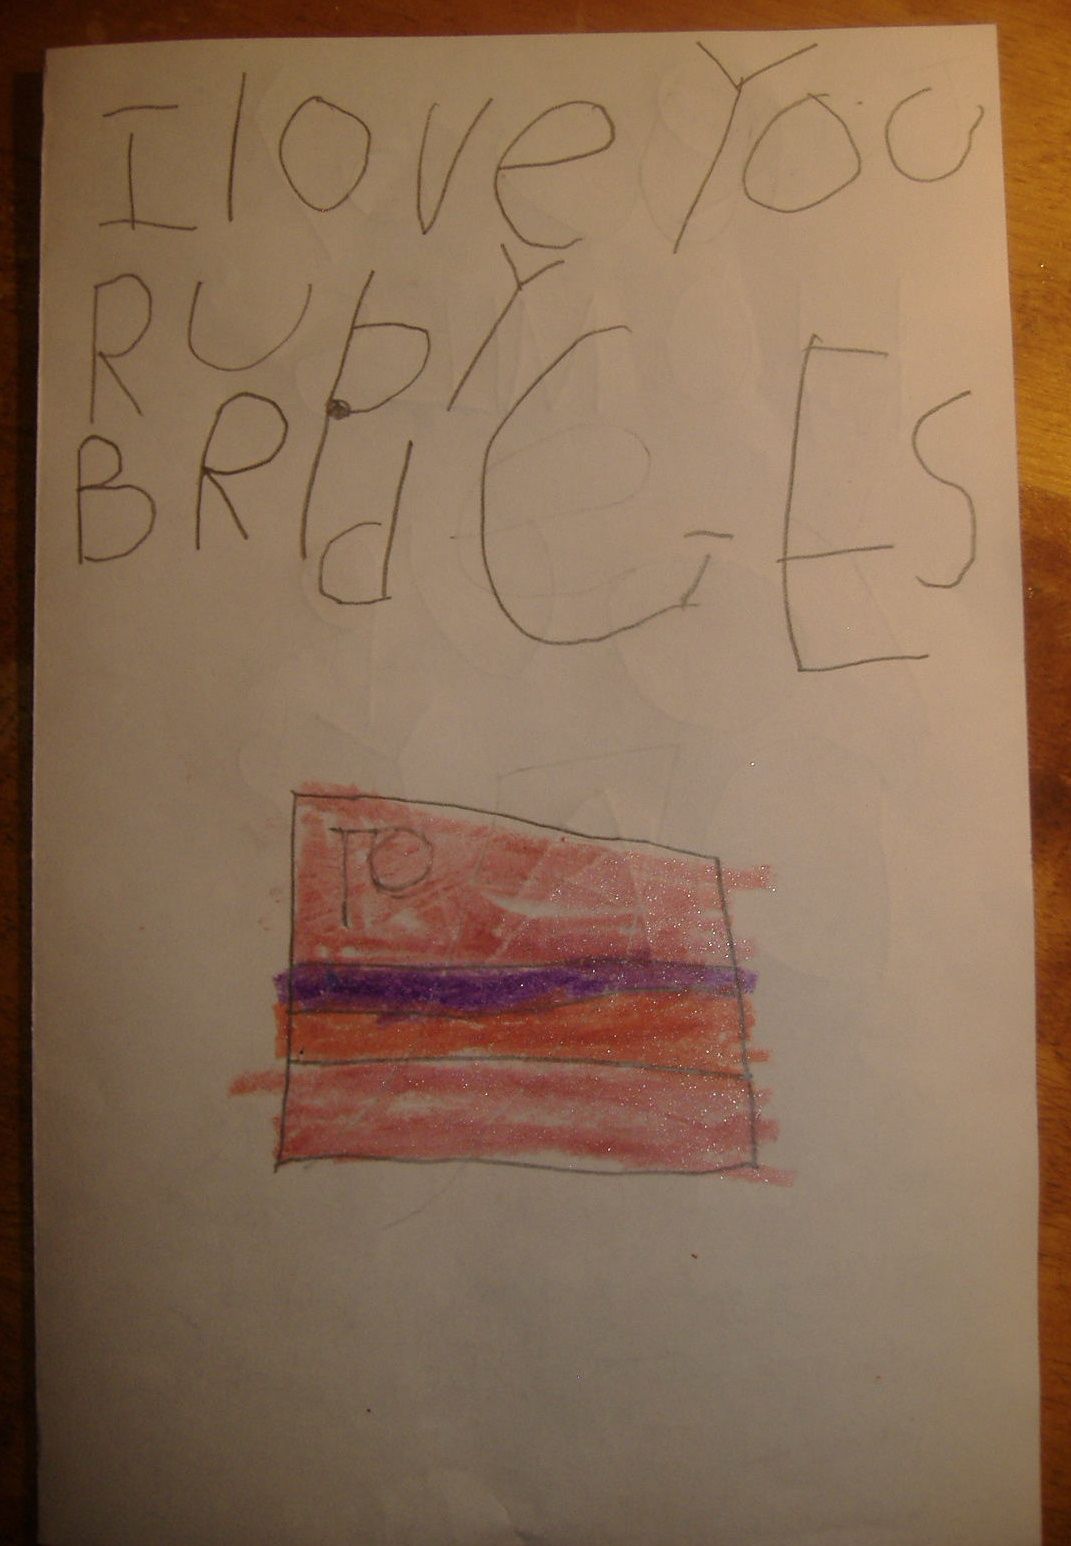 ruby bridges thesis Bridges essays a bridge is a structure designed to provide continuous passage over something bridges usually carry trains, cars, water, or power lines there are.